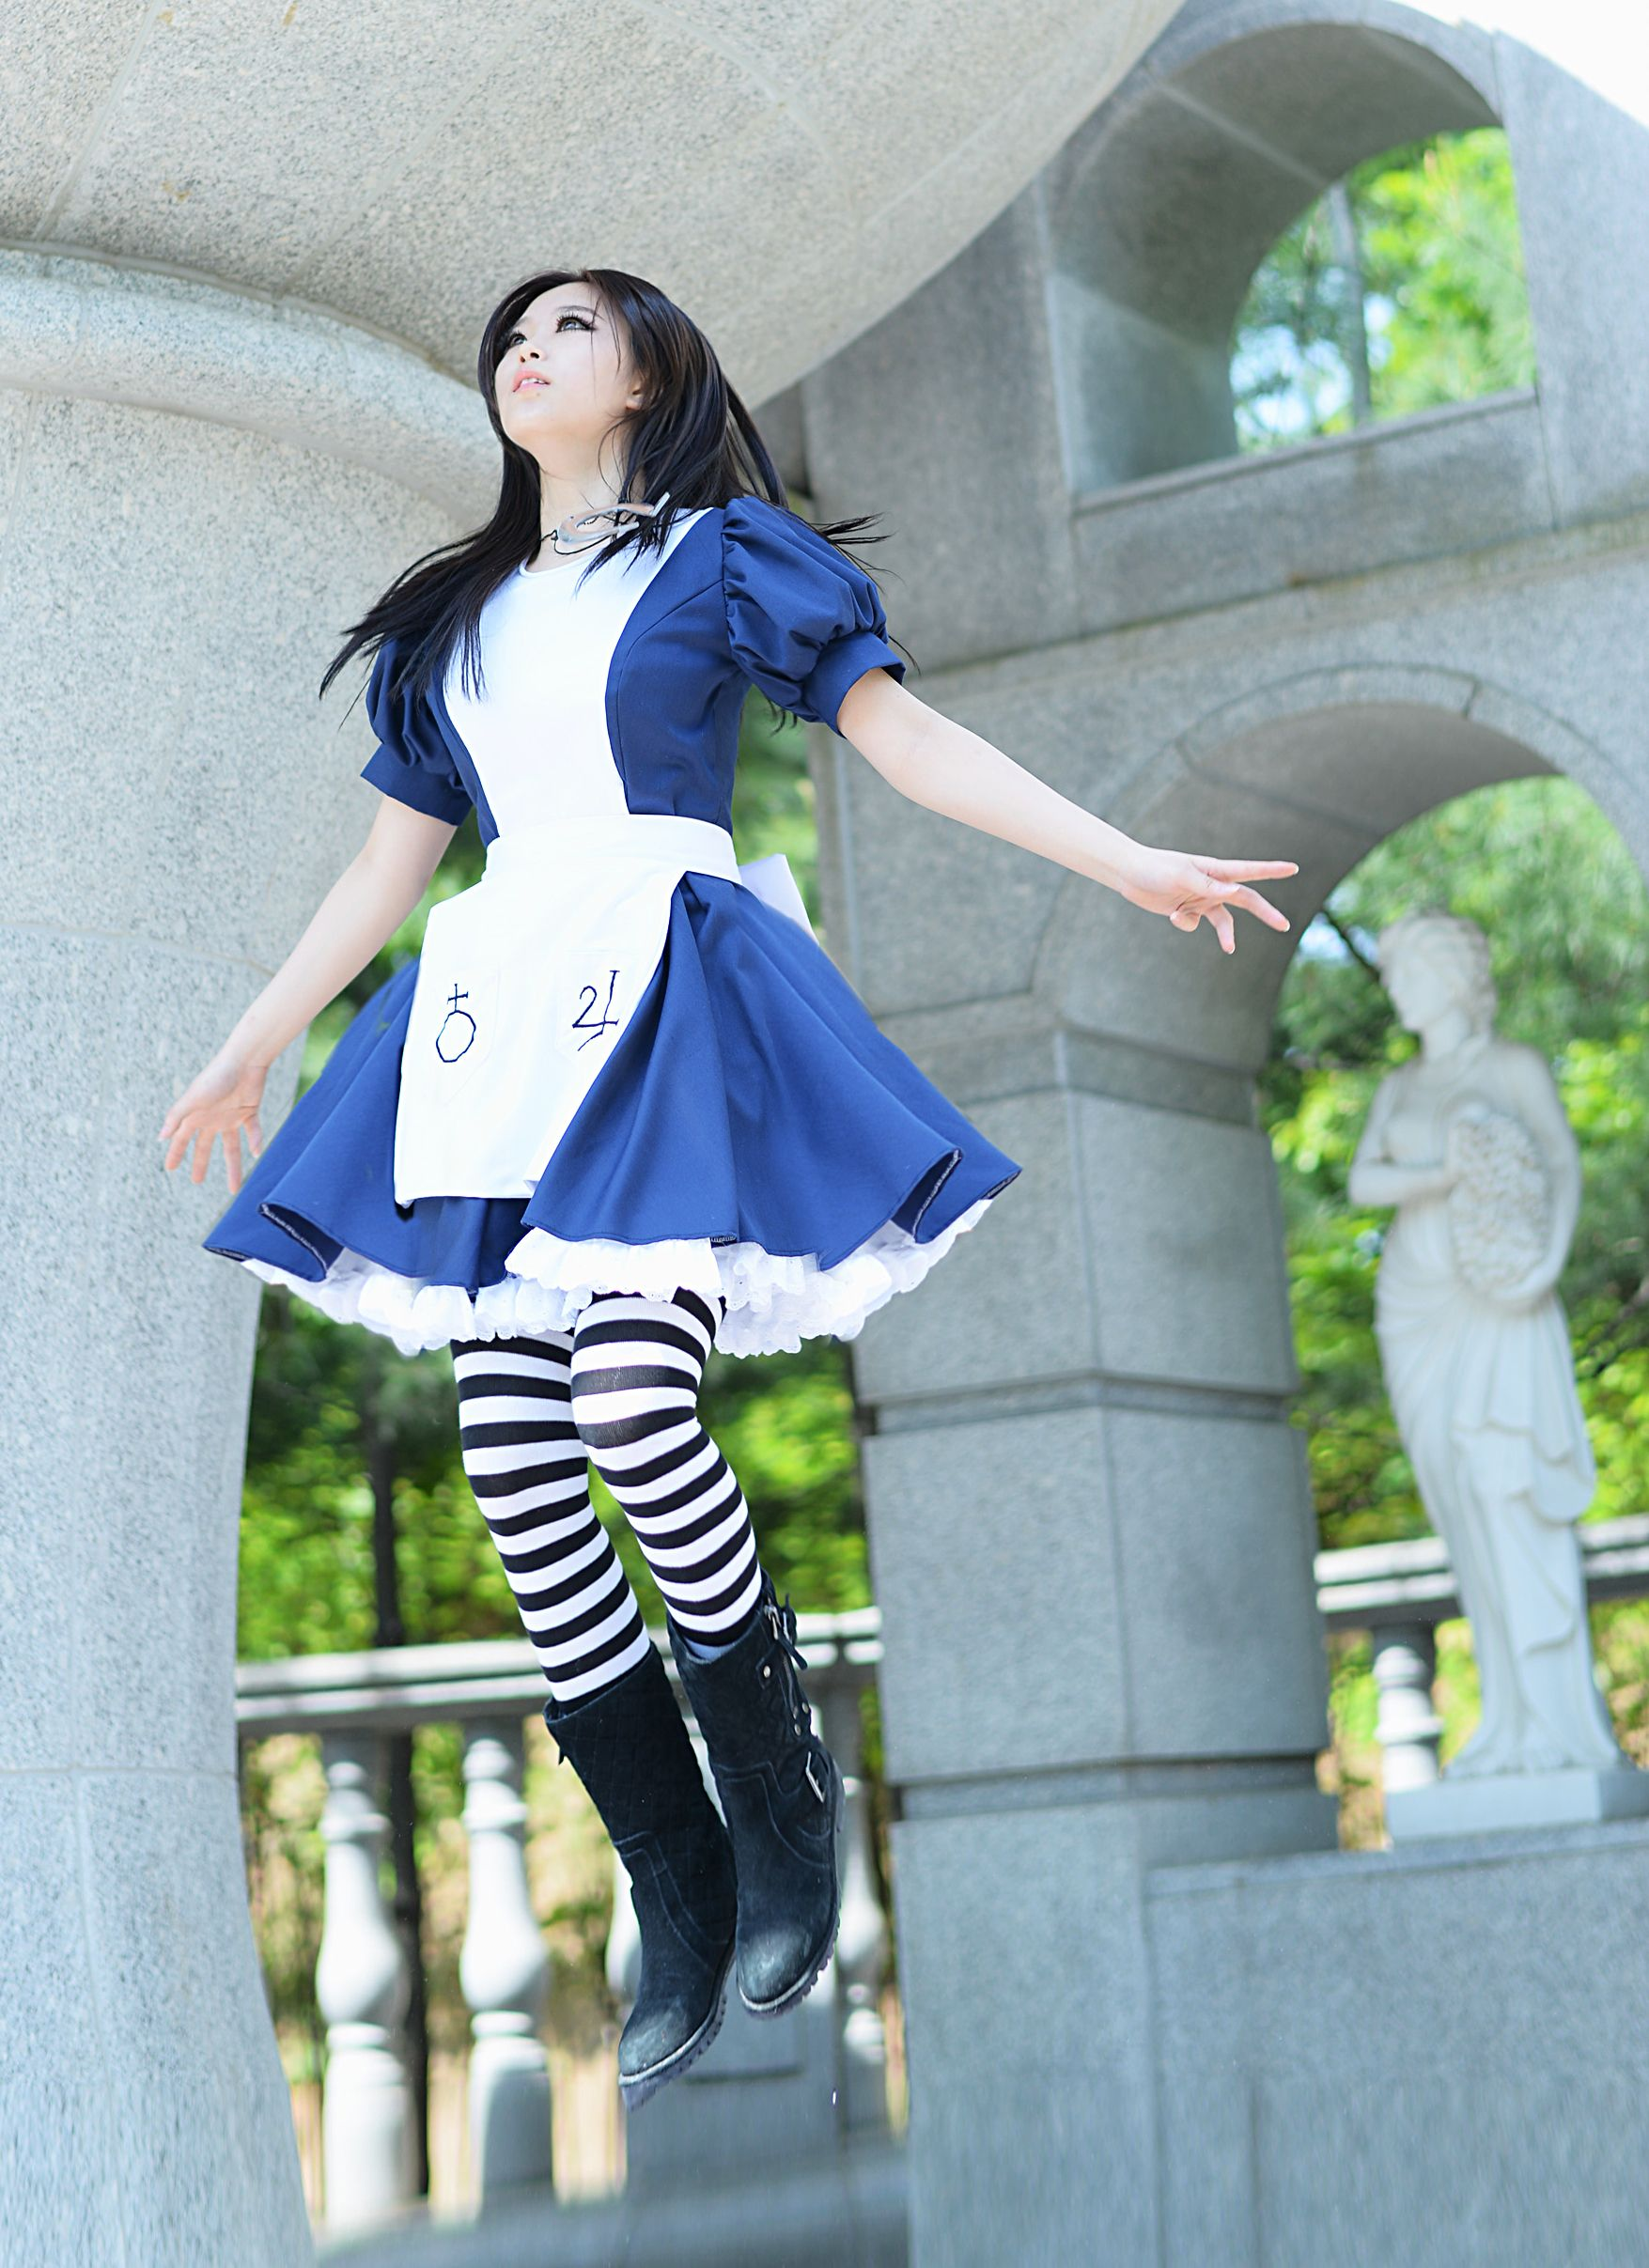 d007a9c426e6a Alice cosplay of Alice  Madness Returns by mussum (S2um) ベストなコスプレ